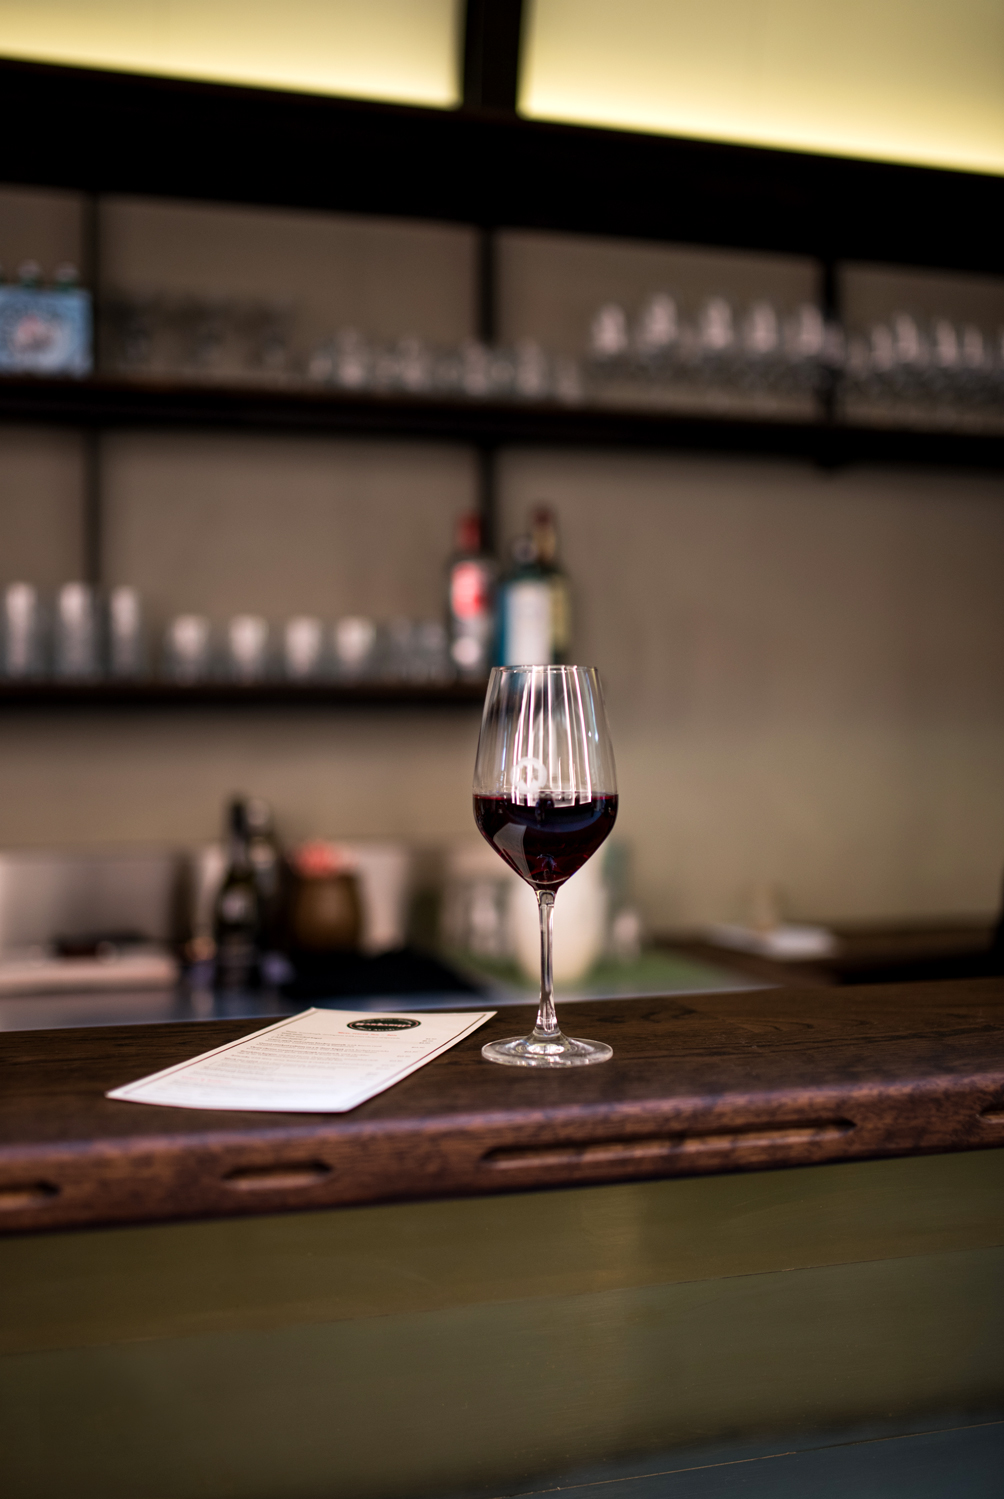 Red wine at the bar